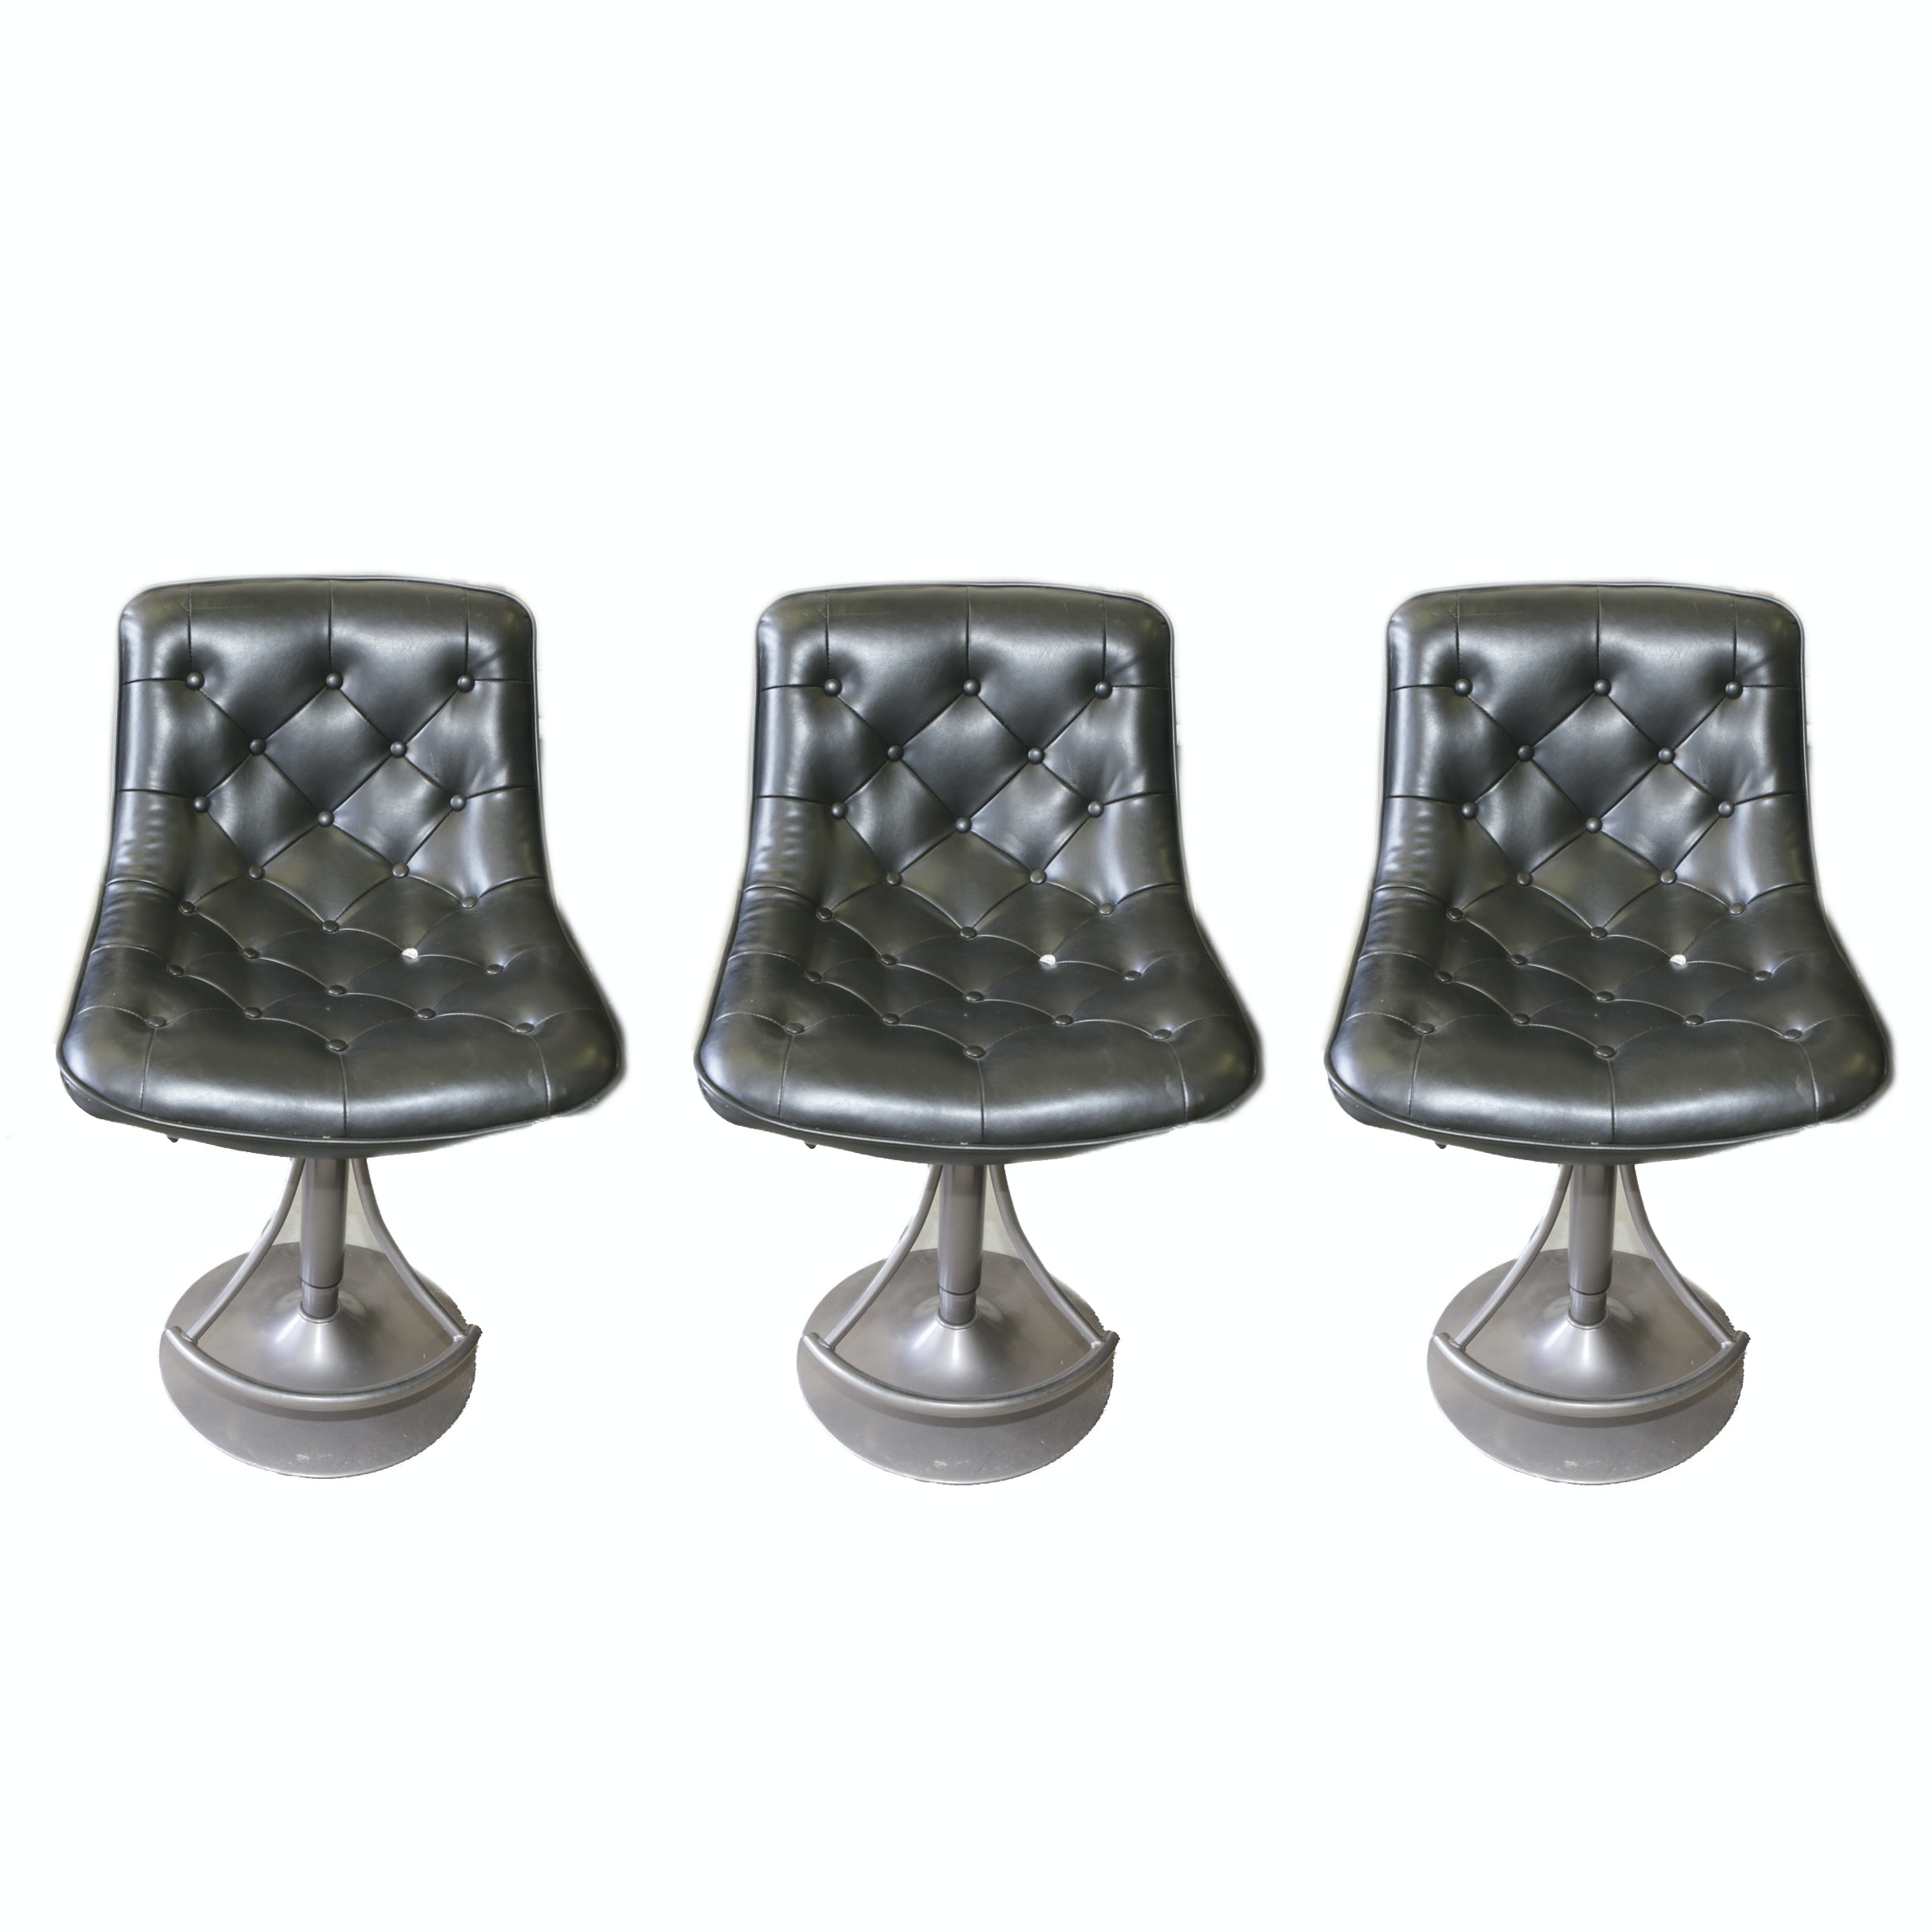 Faux Leather Tufted Bar Stools With Metal Bases